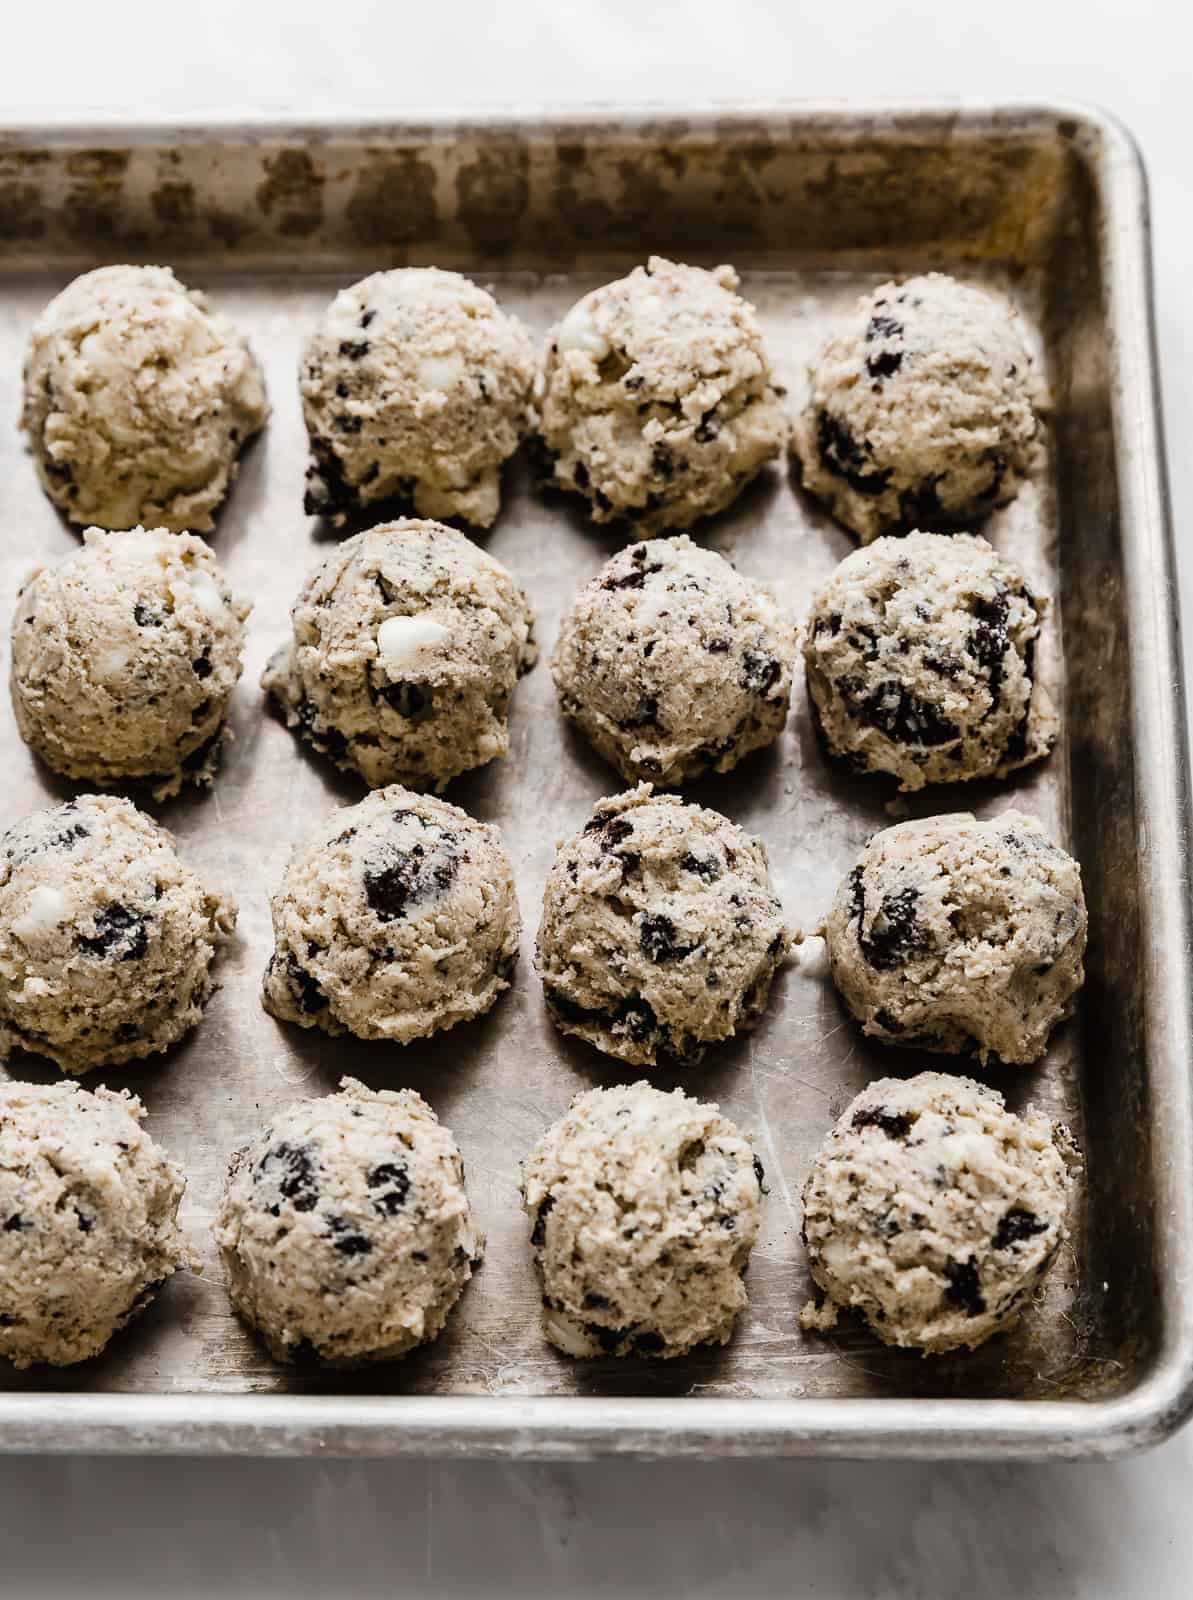 Oreo and white chocolate chip loaded cookies and cream cookies scooped into cookie dough balls, sitting on a baking sheet.